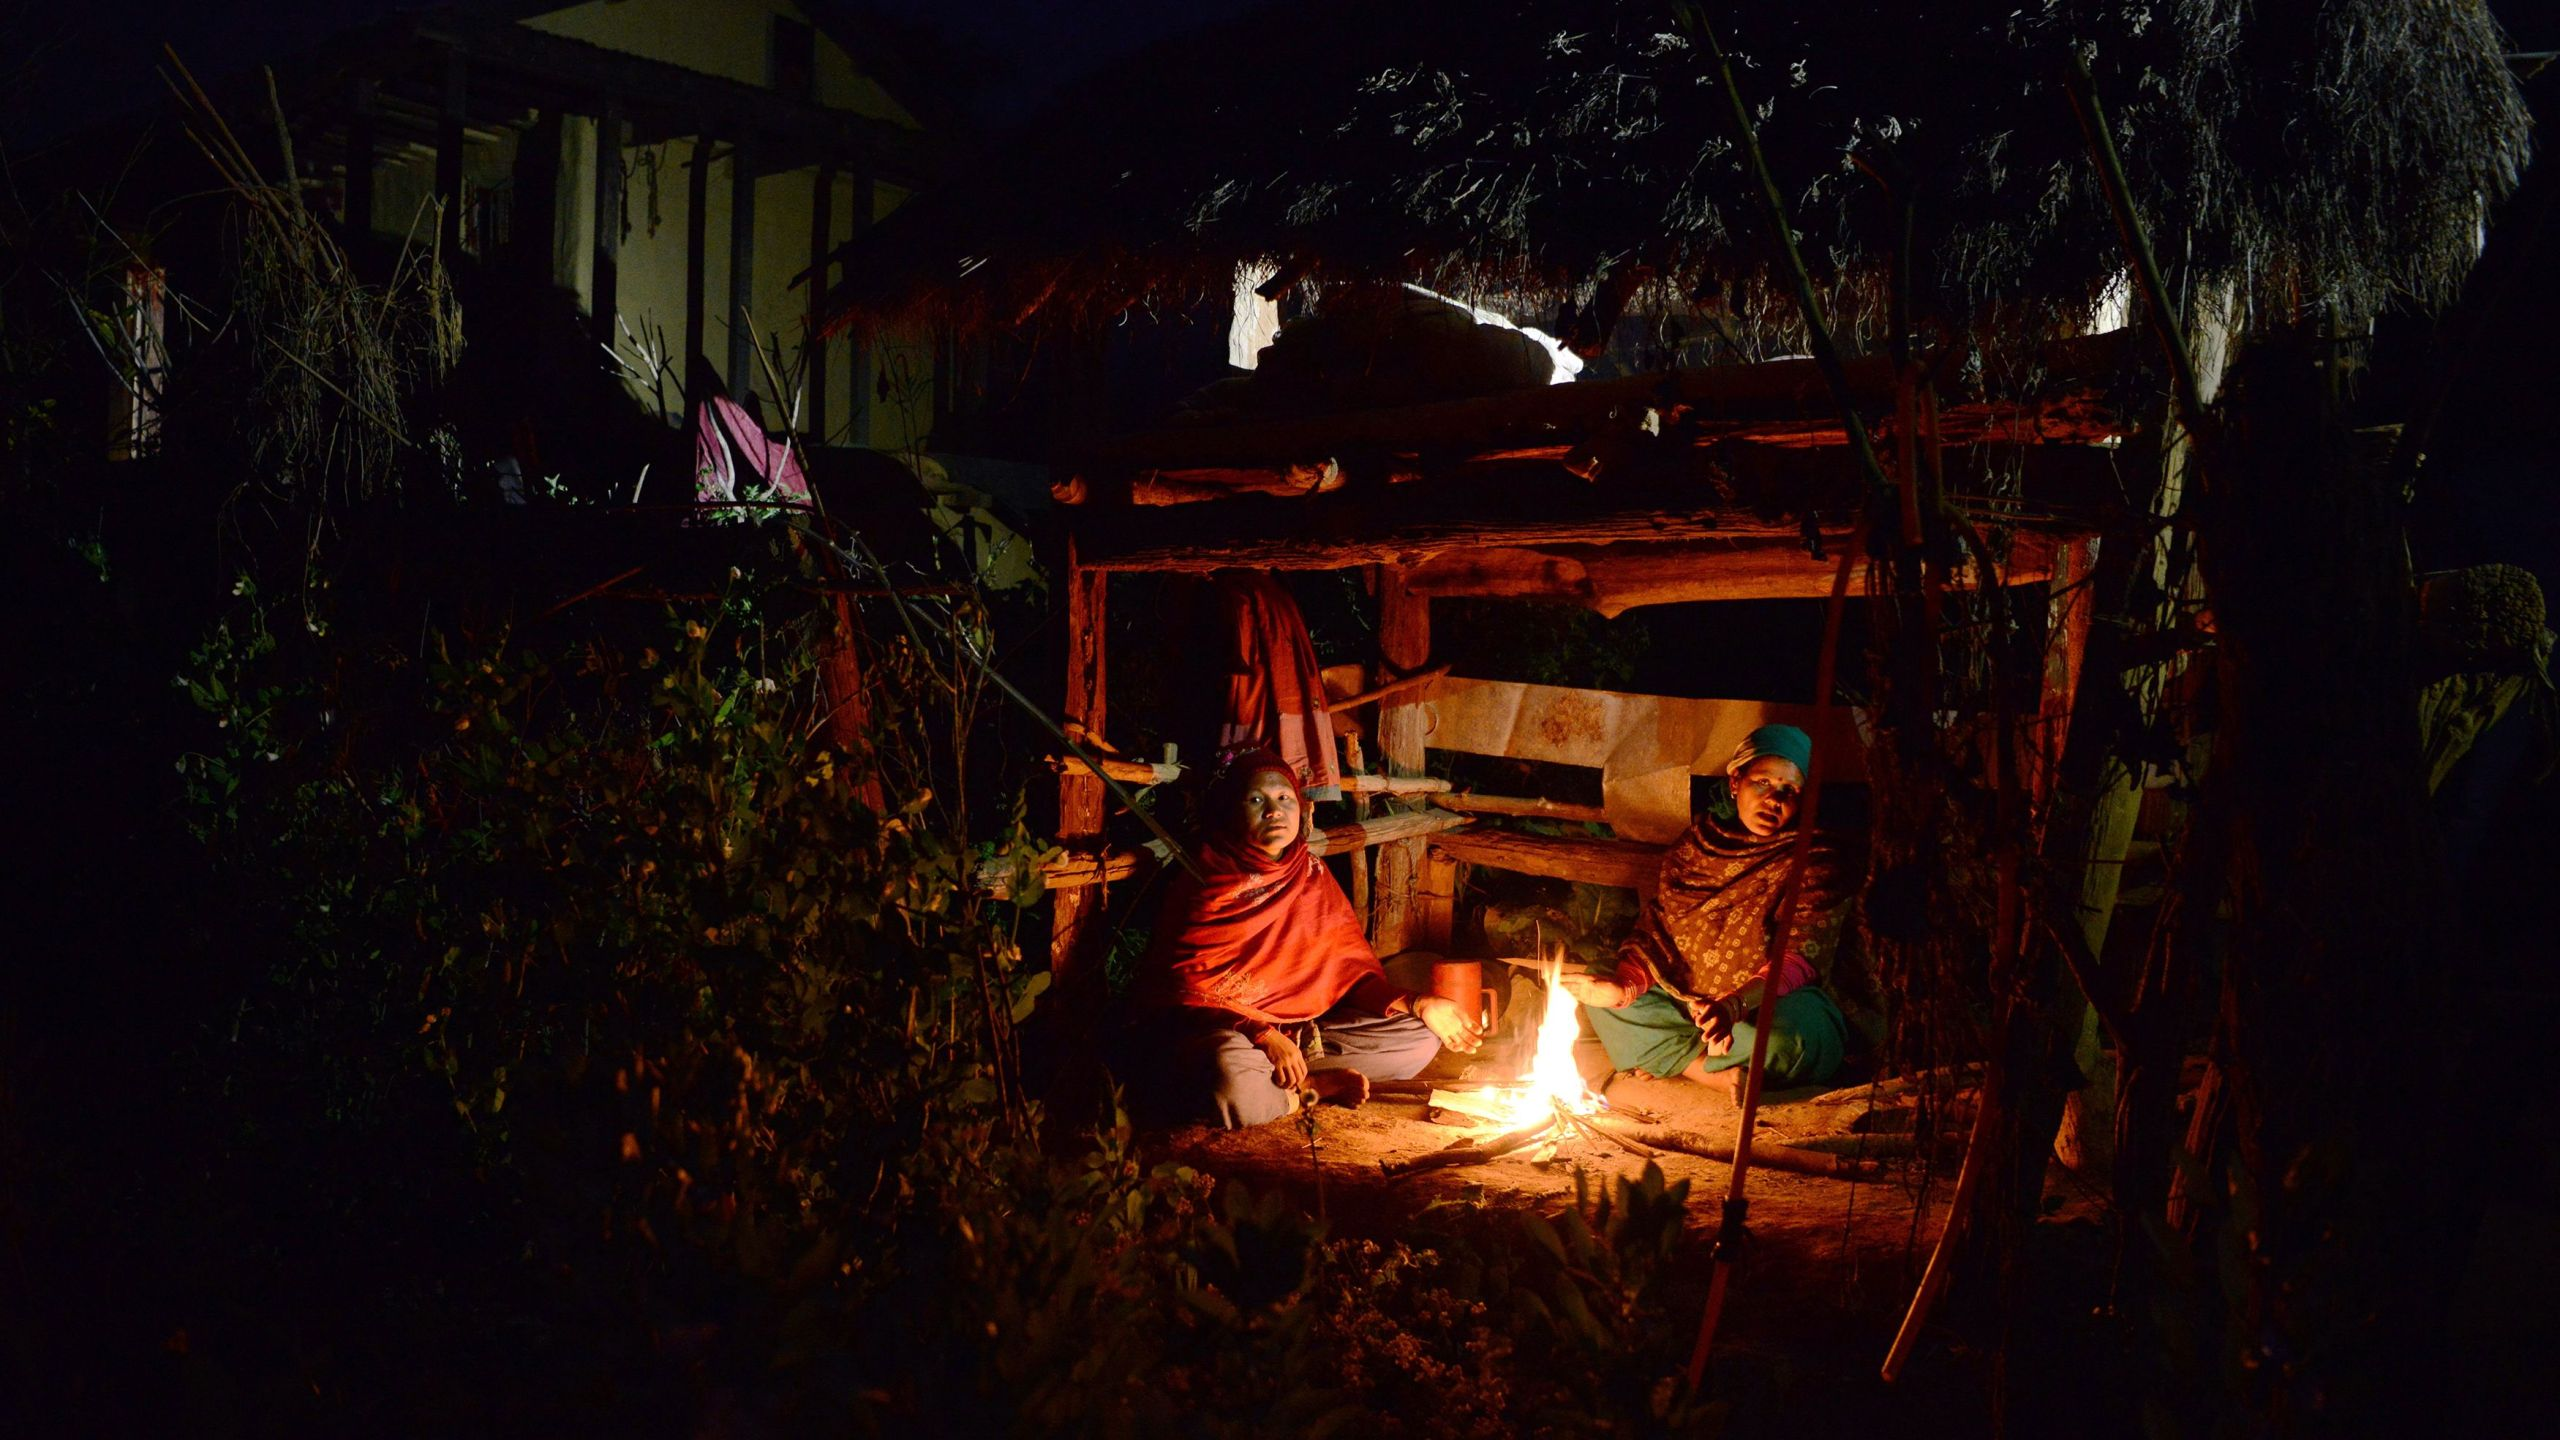 In this photograph taken on February 3, 2017, Nepalese women Pabitra Giri (L) and Yum Kumari Giri (R) sit by a fire as they live in a Chhaupadi hut during their menstruation period in Surkhet District, some 520km west of Kathmandu. The practice of banning women from the home when they are menstruating is linked to Hinduism and considers women untouchable at this time. They are banished from the home -- barred from touching food, religious icons, cattle and men -- and forced into a monthly exile sleeping in basic huts. (Credit: PRAKASH MATHEMA/AFP/Getty Images)